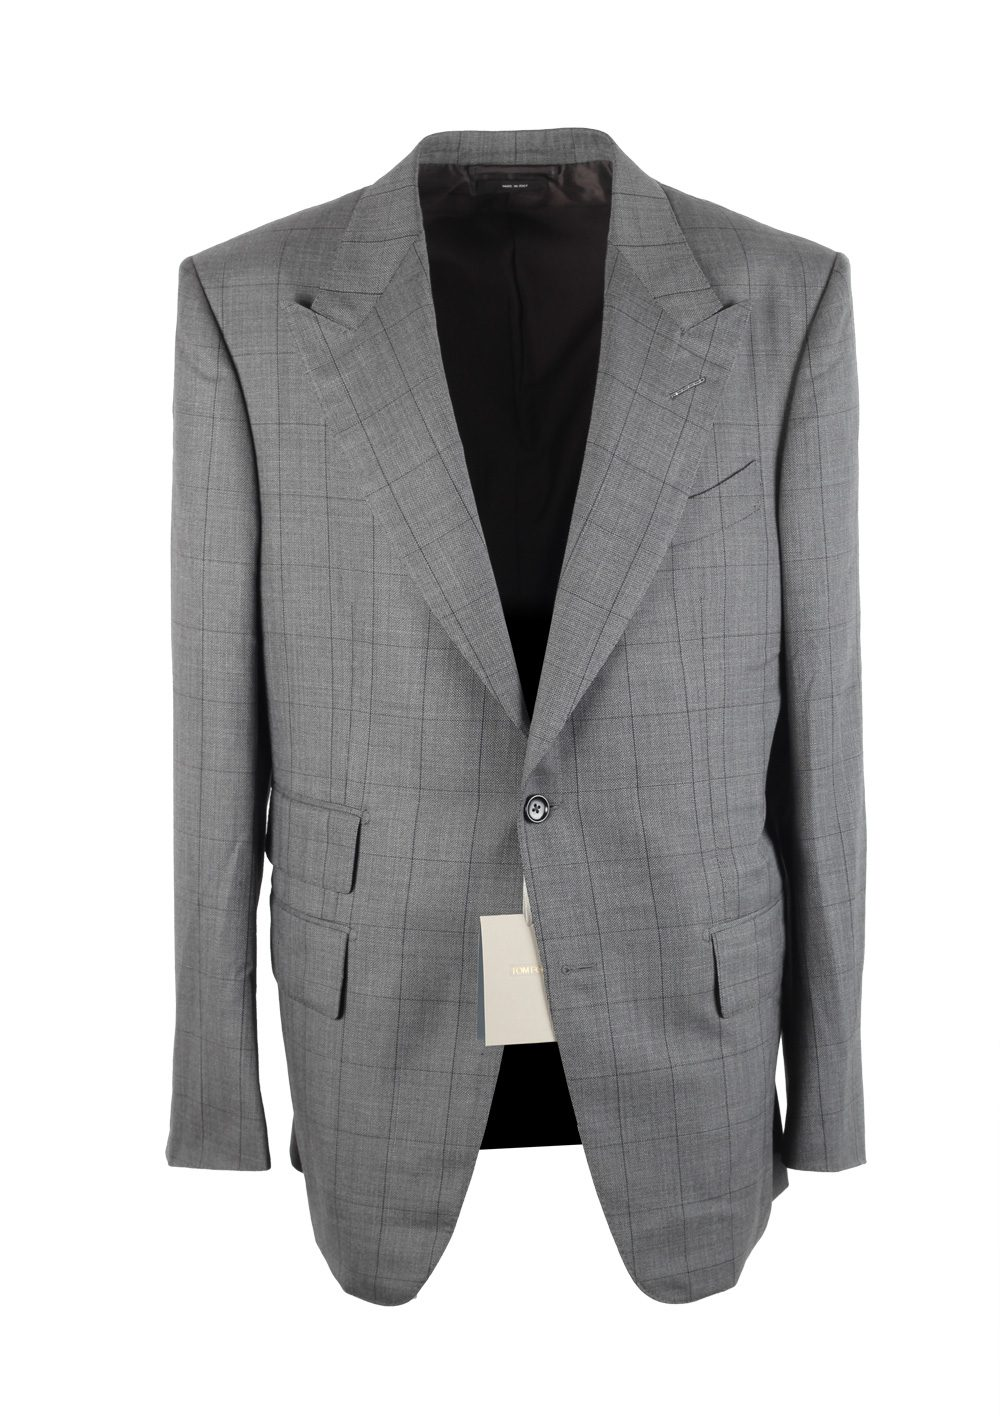 TOM FORD Windsor Checked Gray Suit | Costume Limité